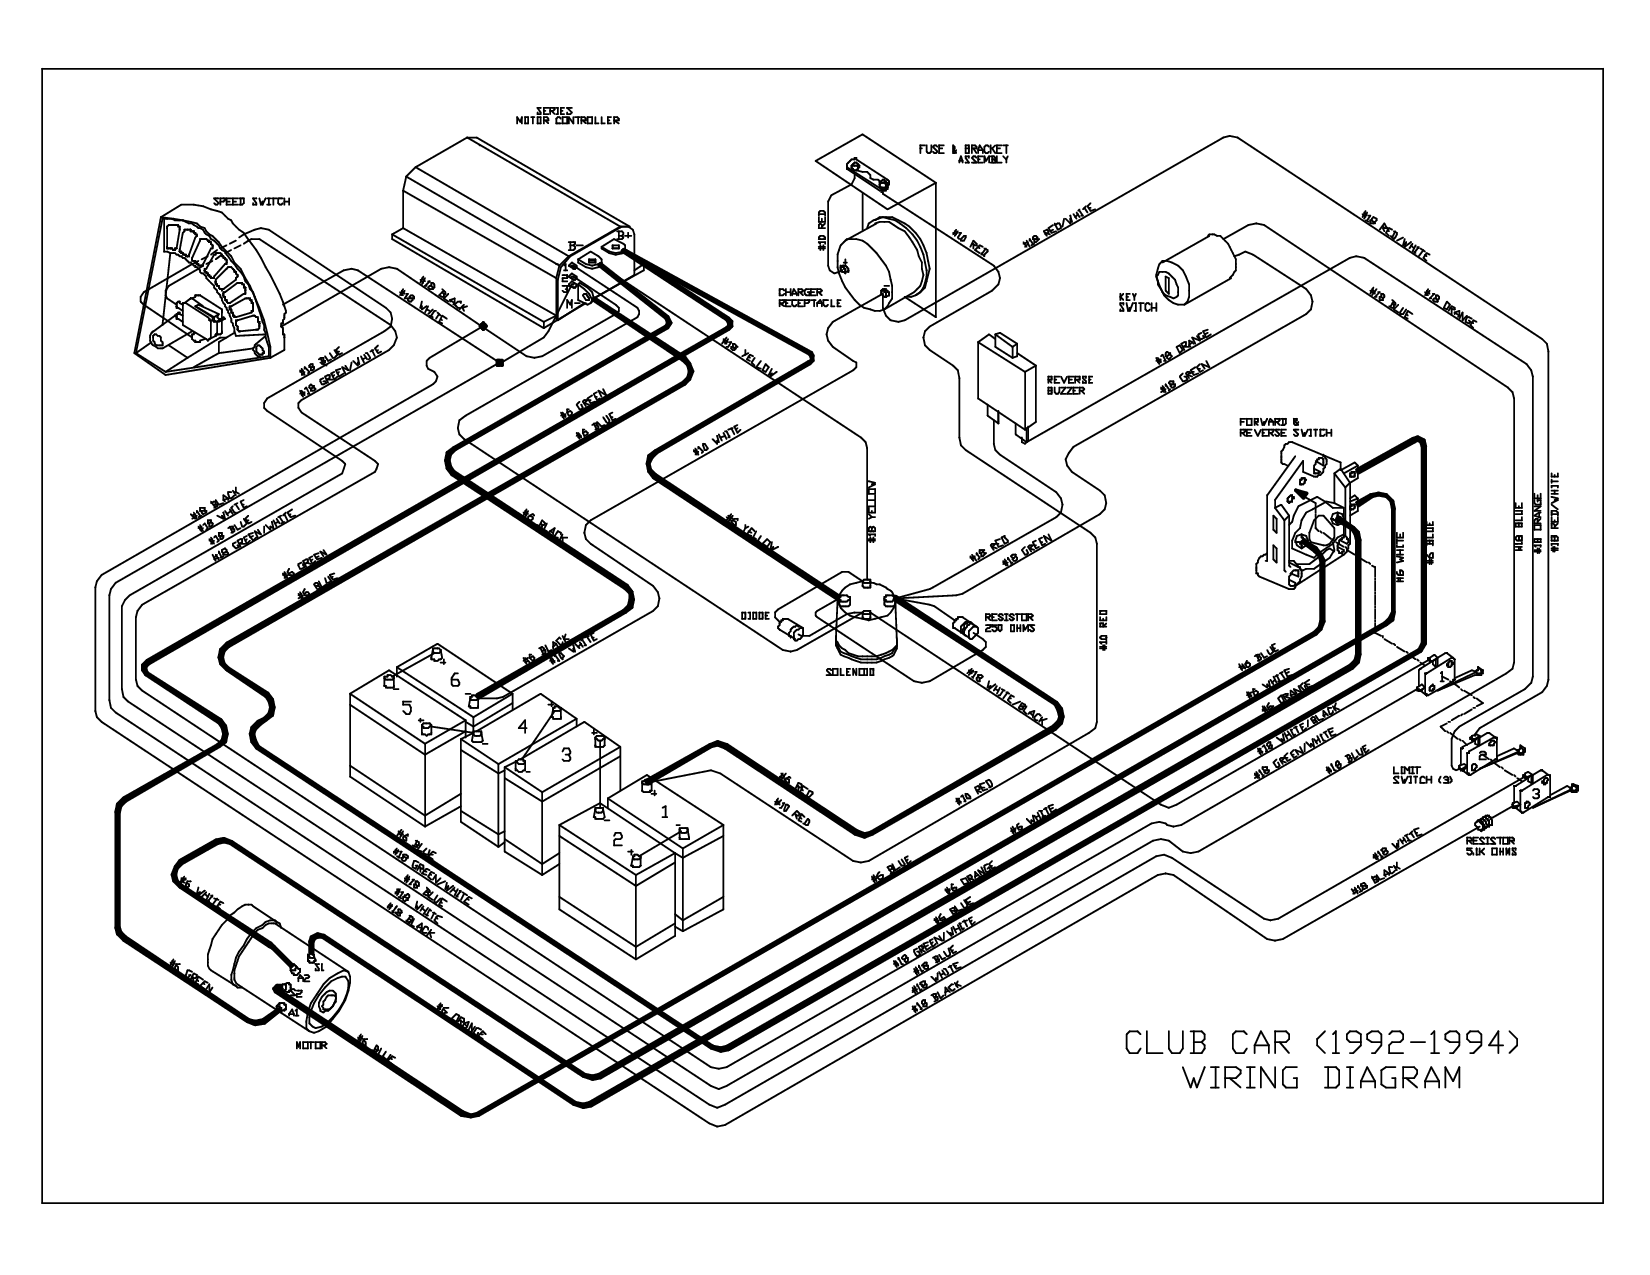 1995 club car wiring diagram club car (1992 1994) wiring 2012 Ezgo Wiring Diagram